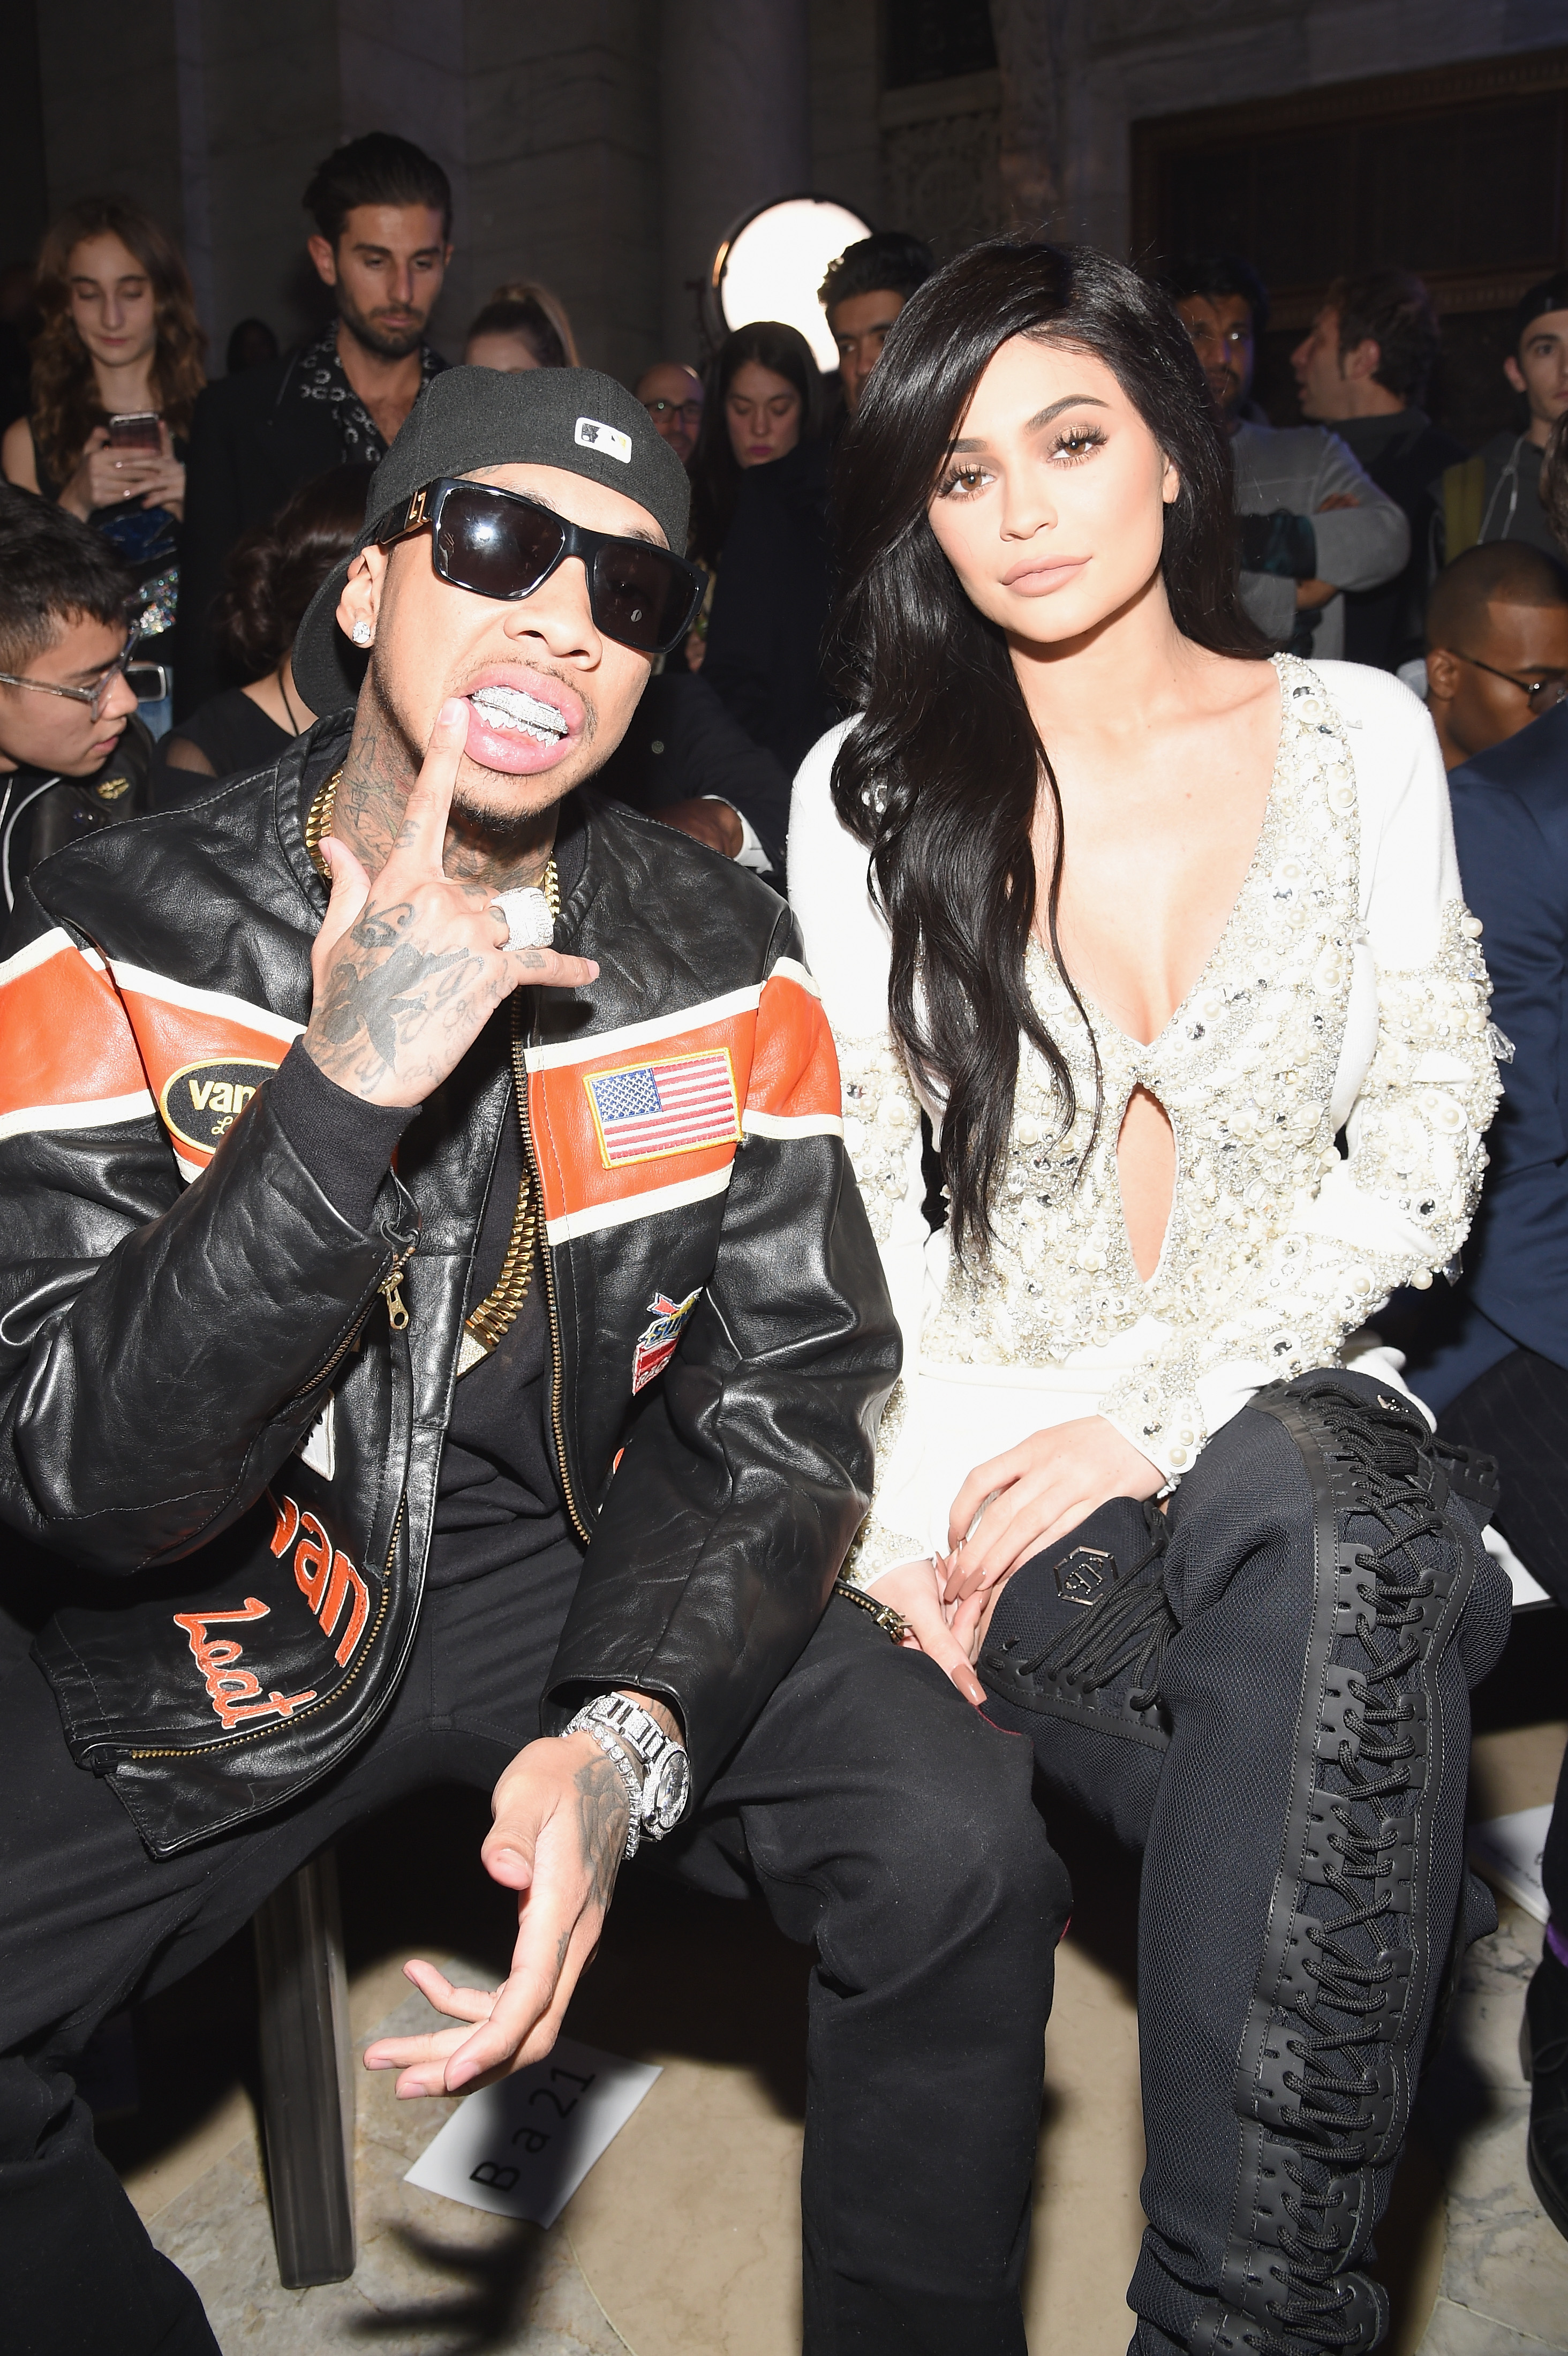 Image of Kylie Jenner and Tyga